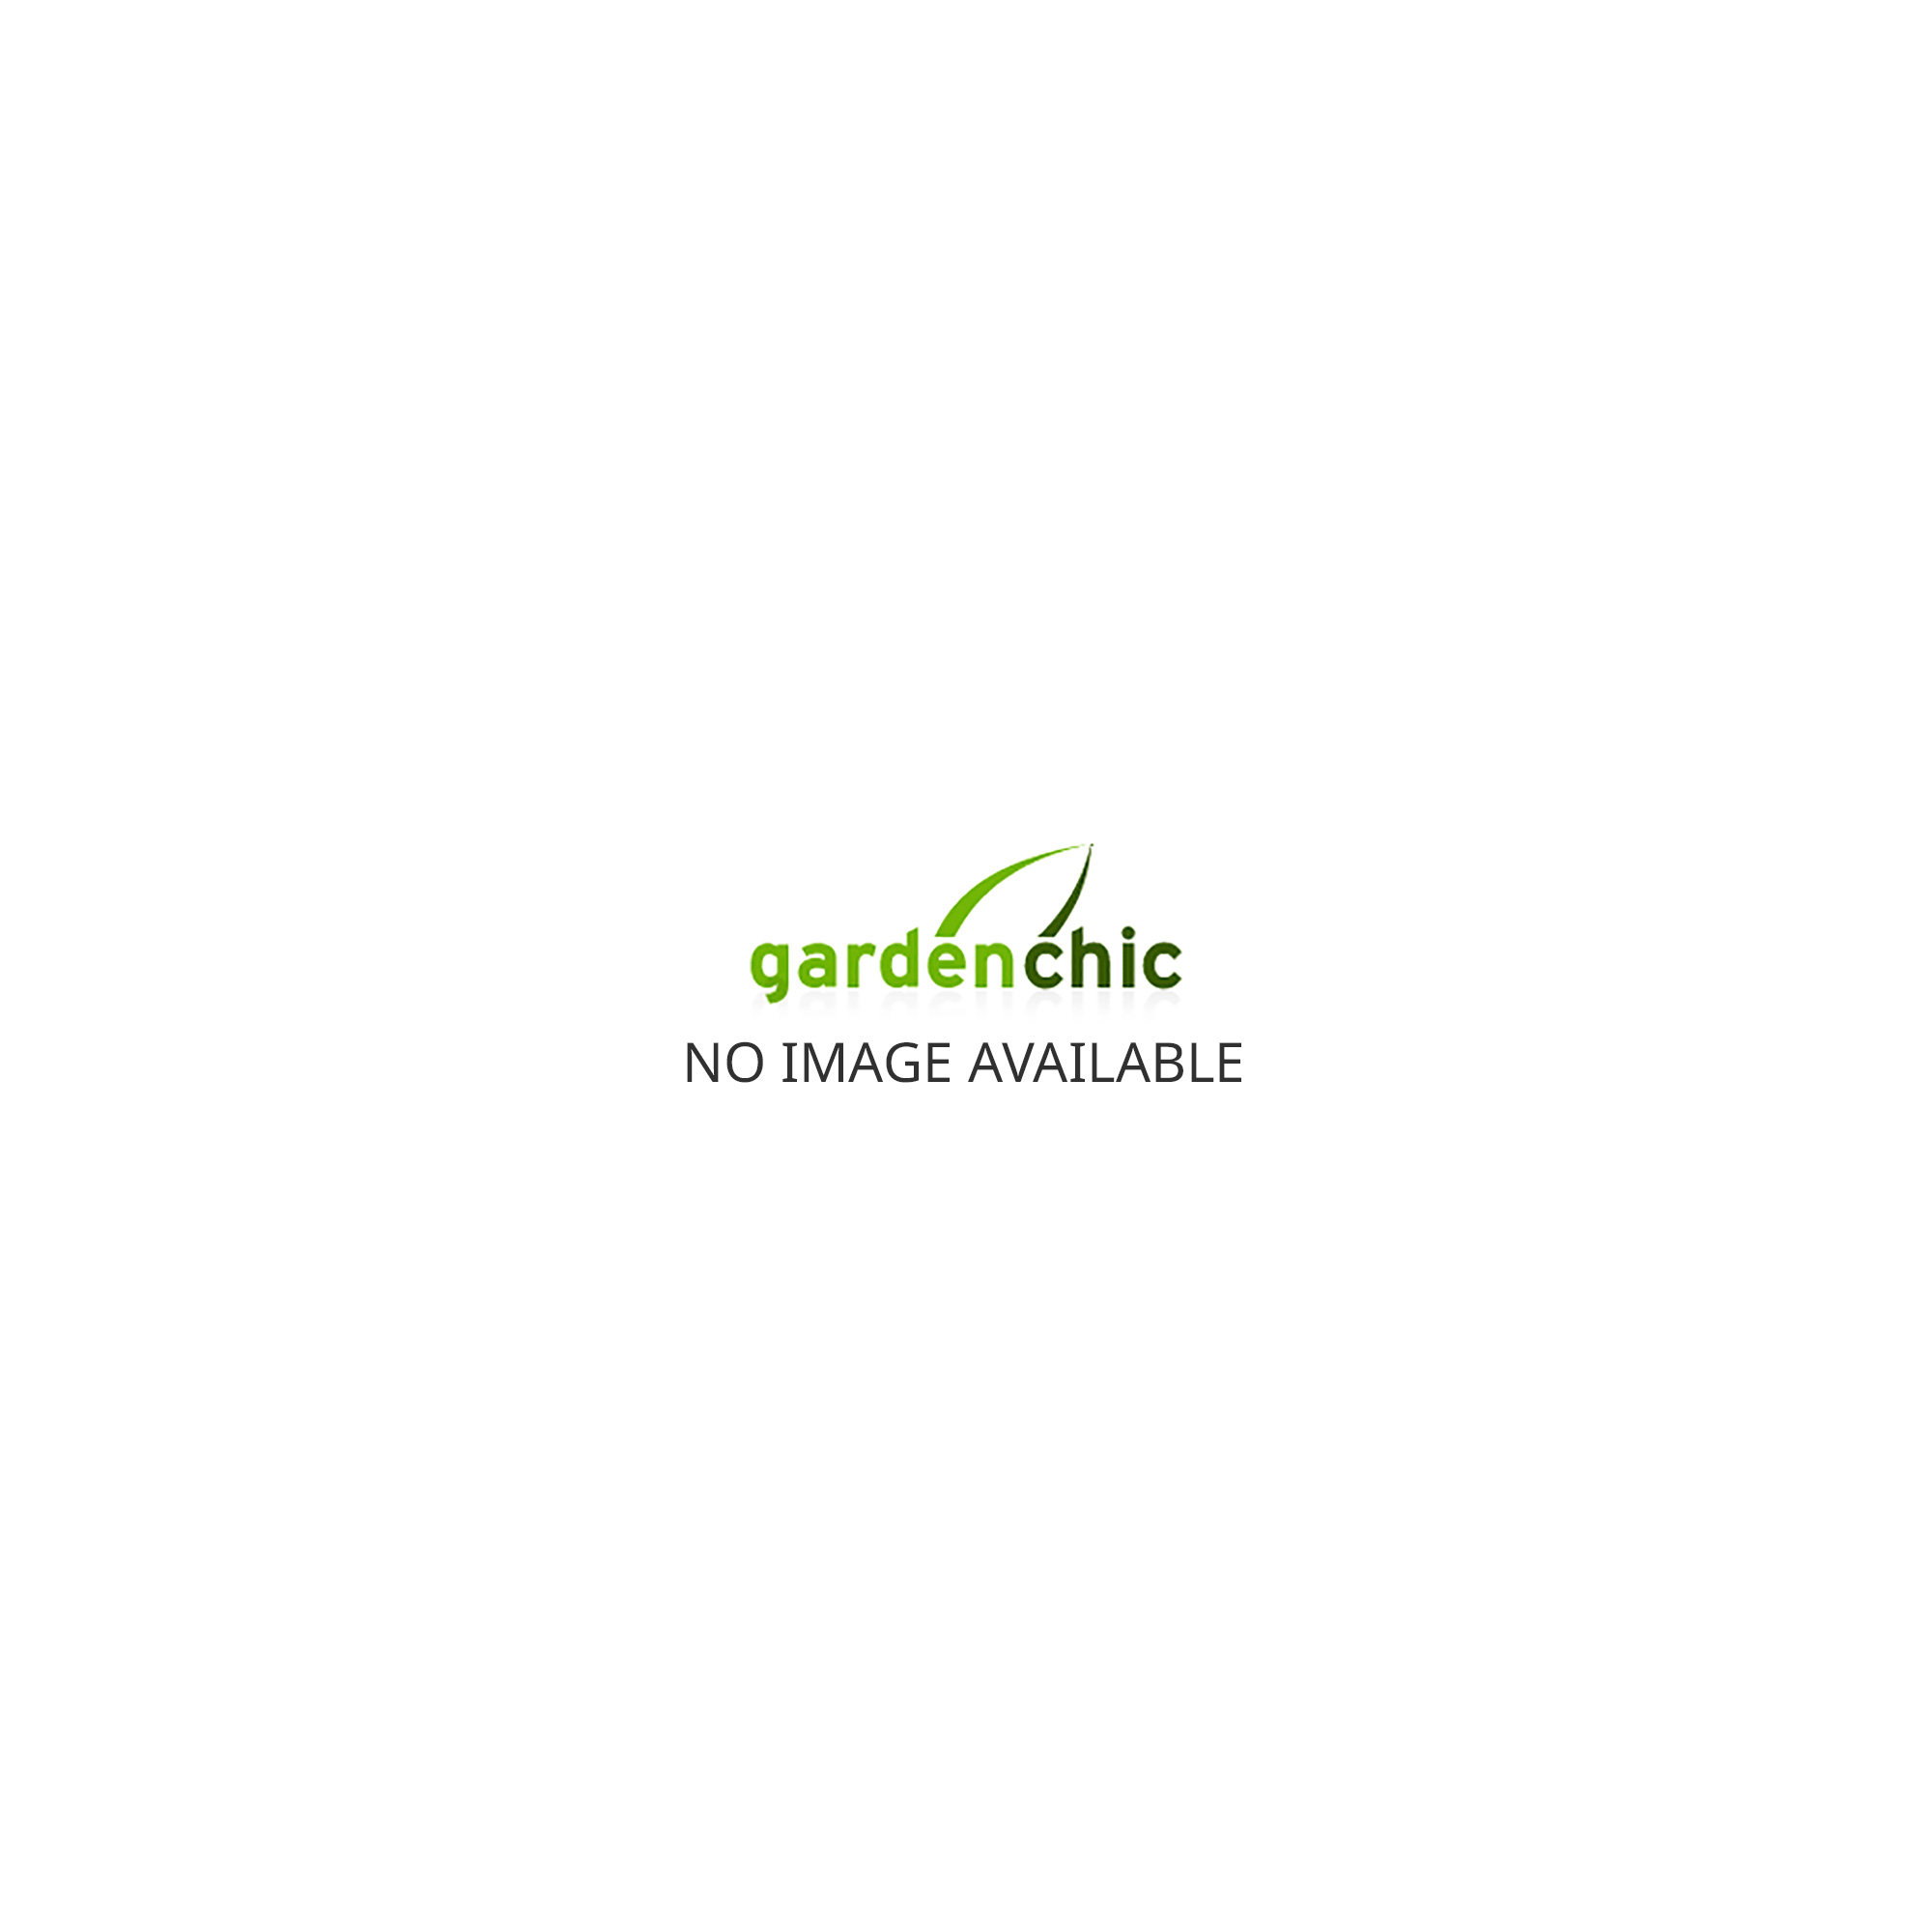 Birdlip 4 x 6 Greenhouse (Green) FREE Waterbutt, Connection Kit and Blinds until May 2018